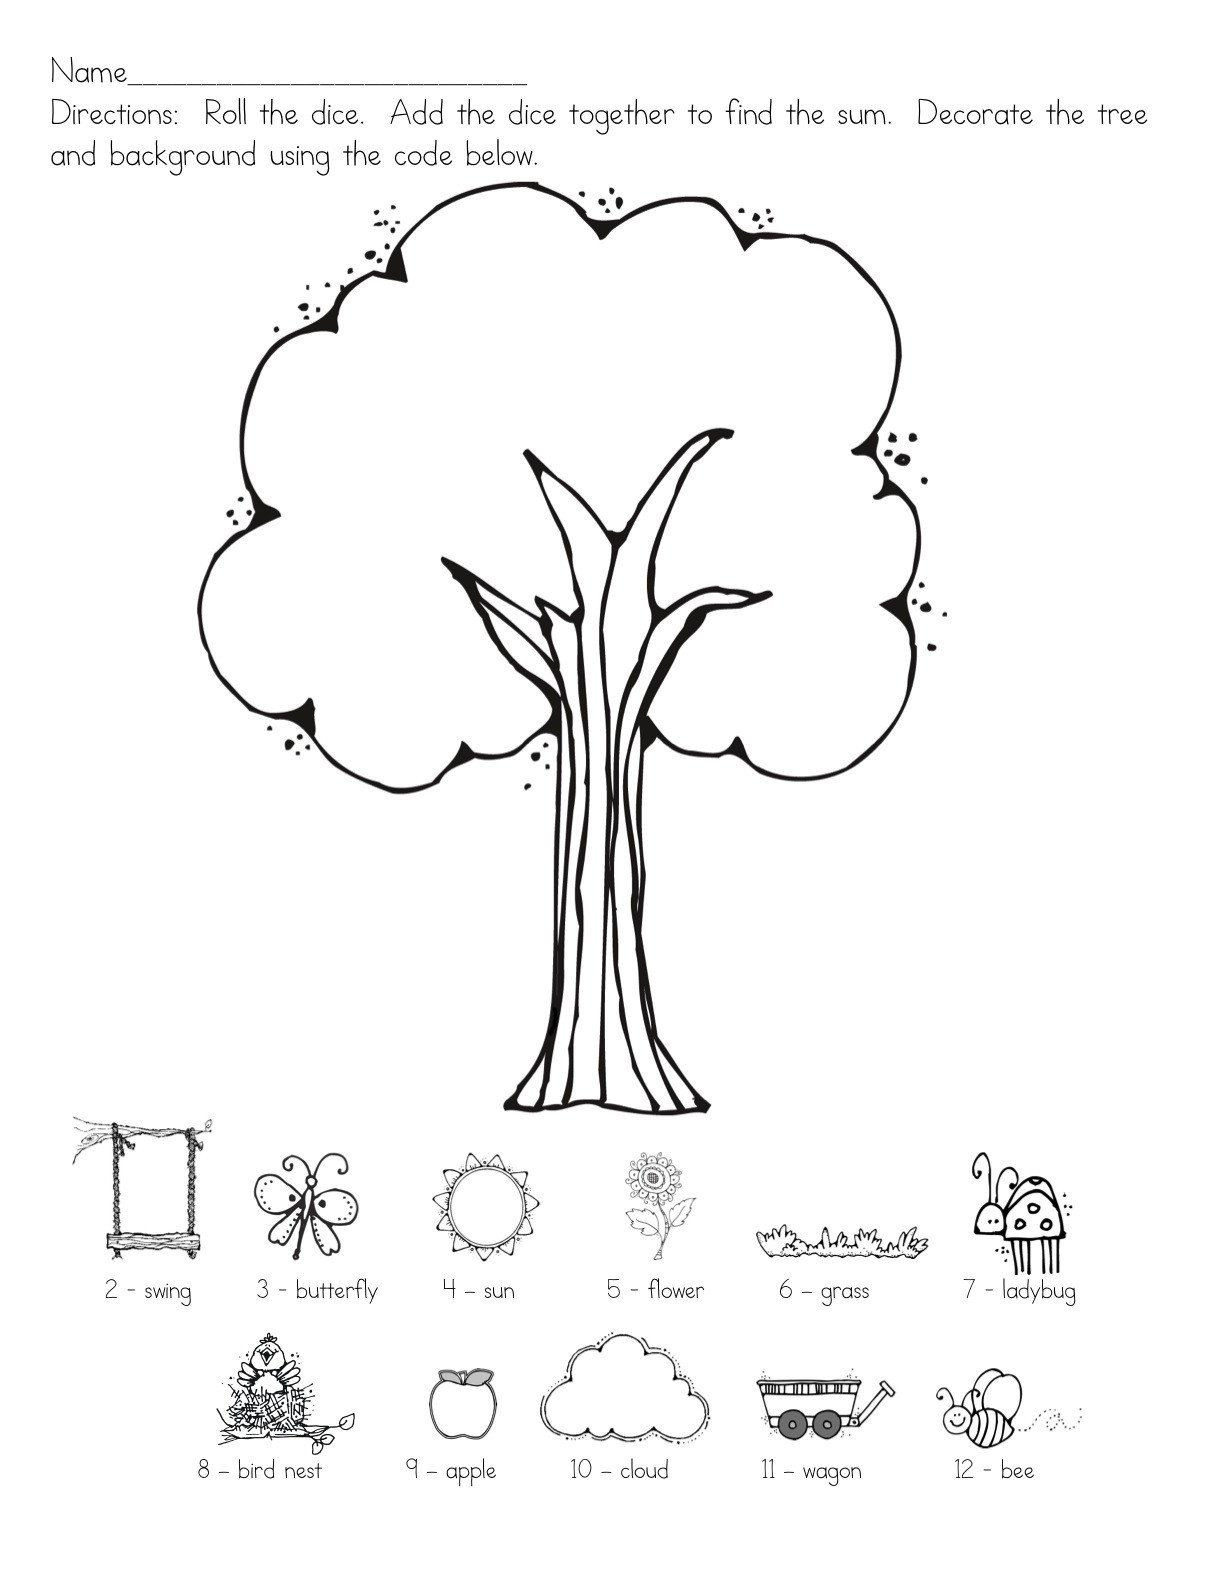 30 Following Directions Coloring Worksheet